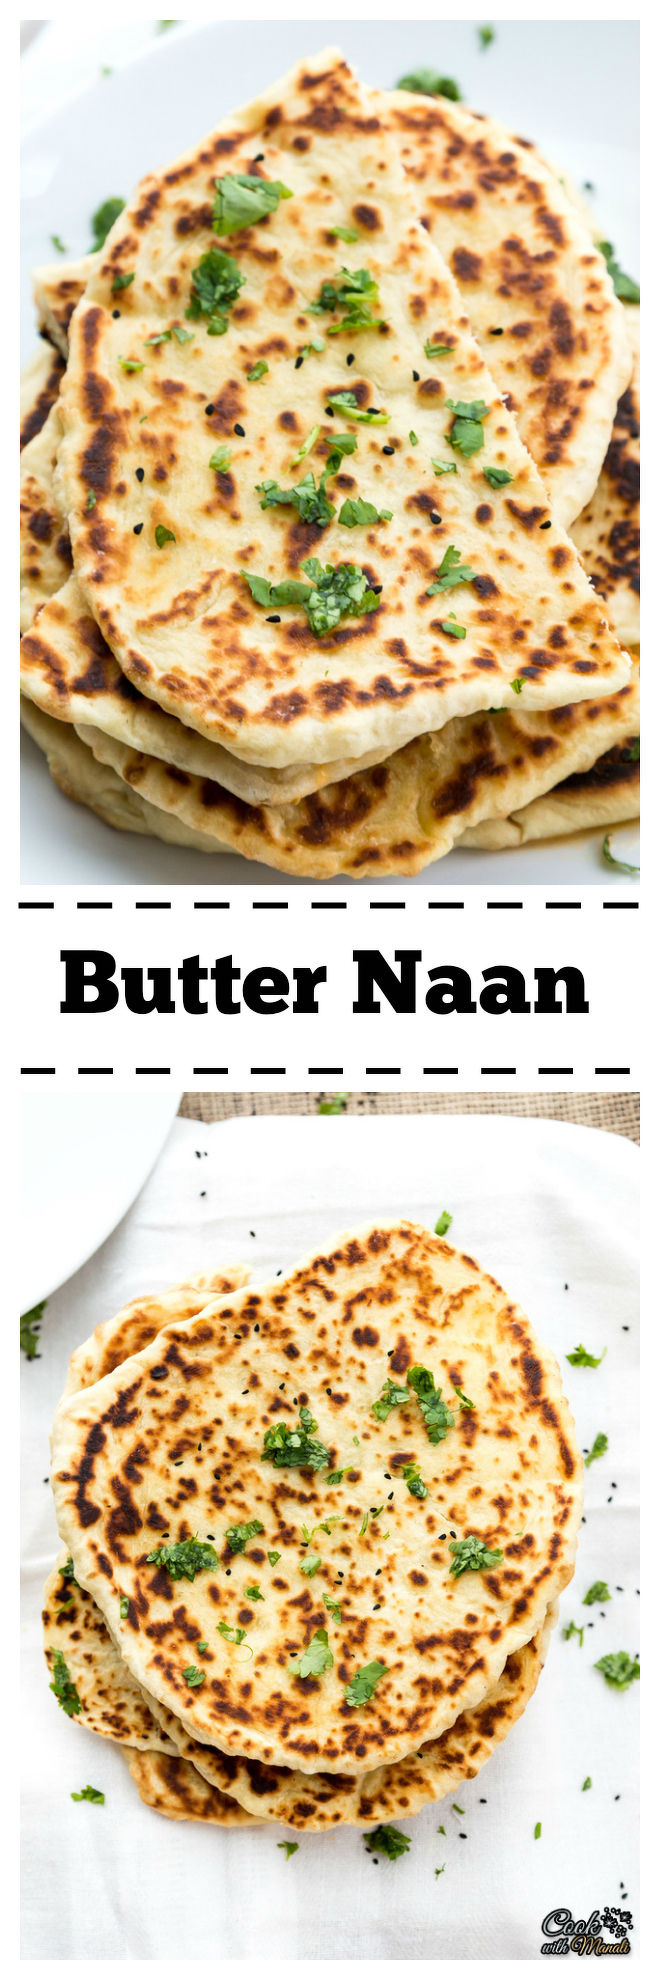 Butter Naan Collage-nocwm